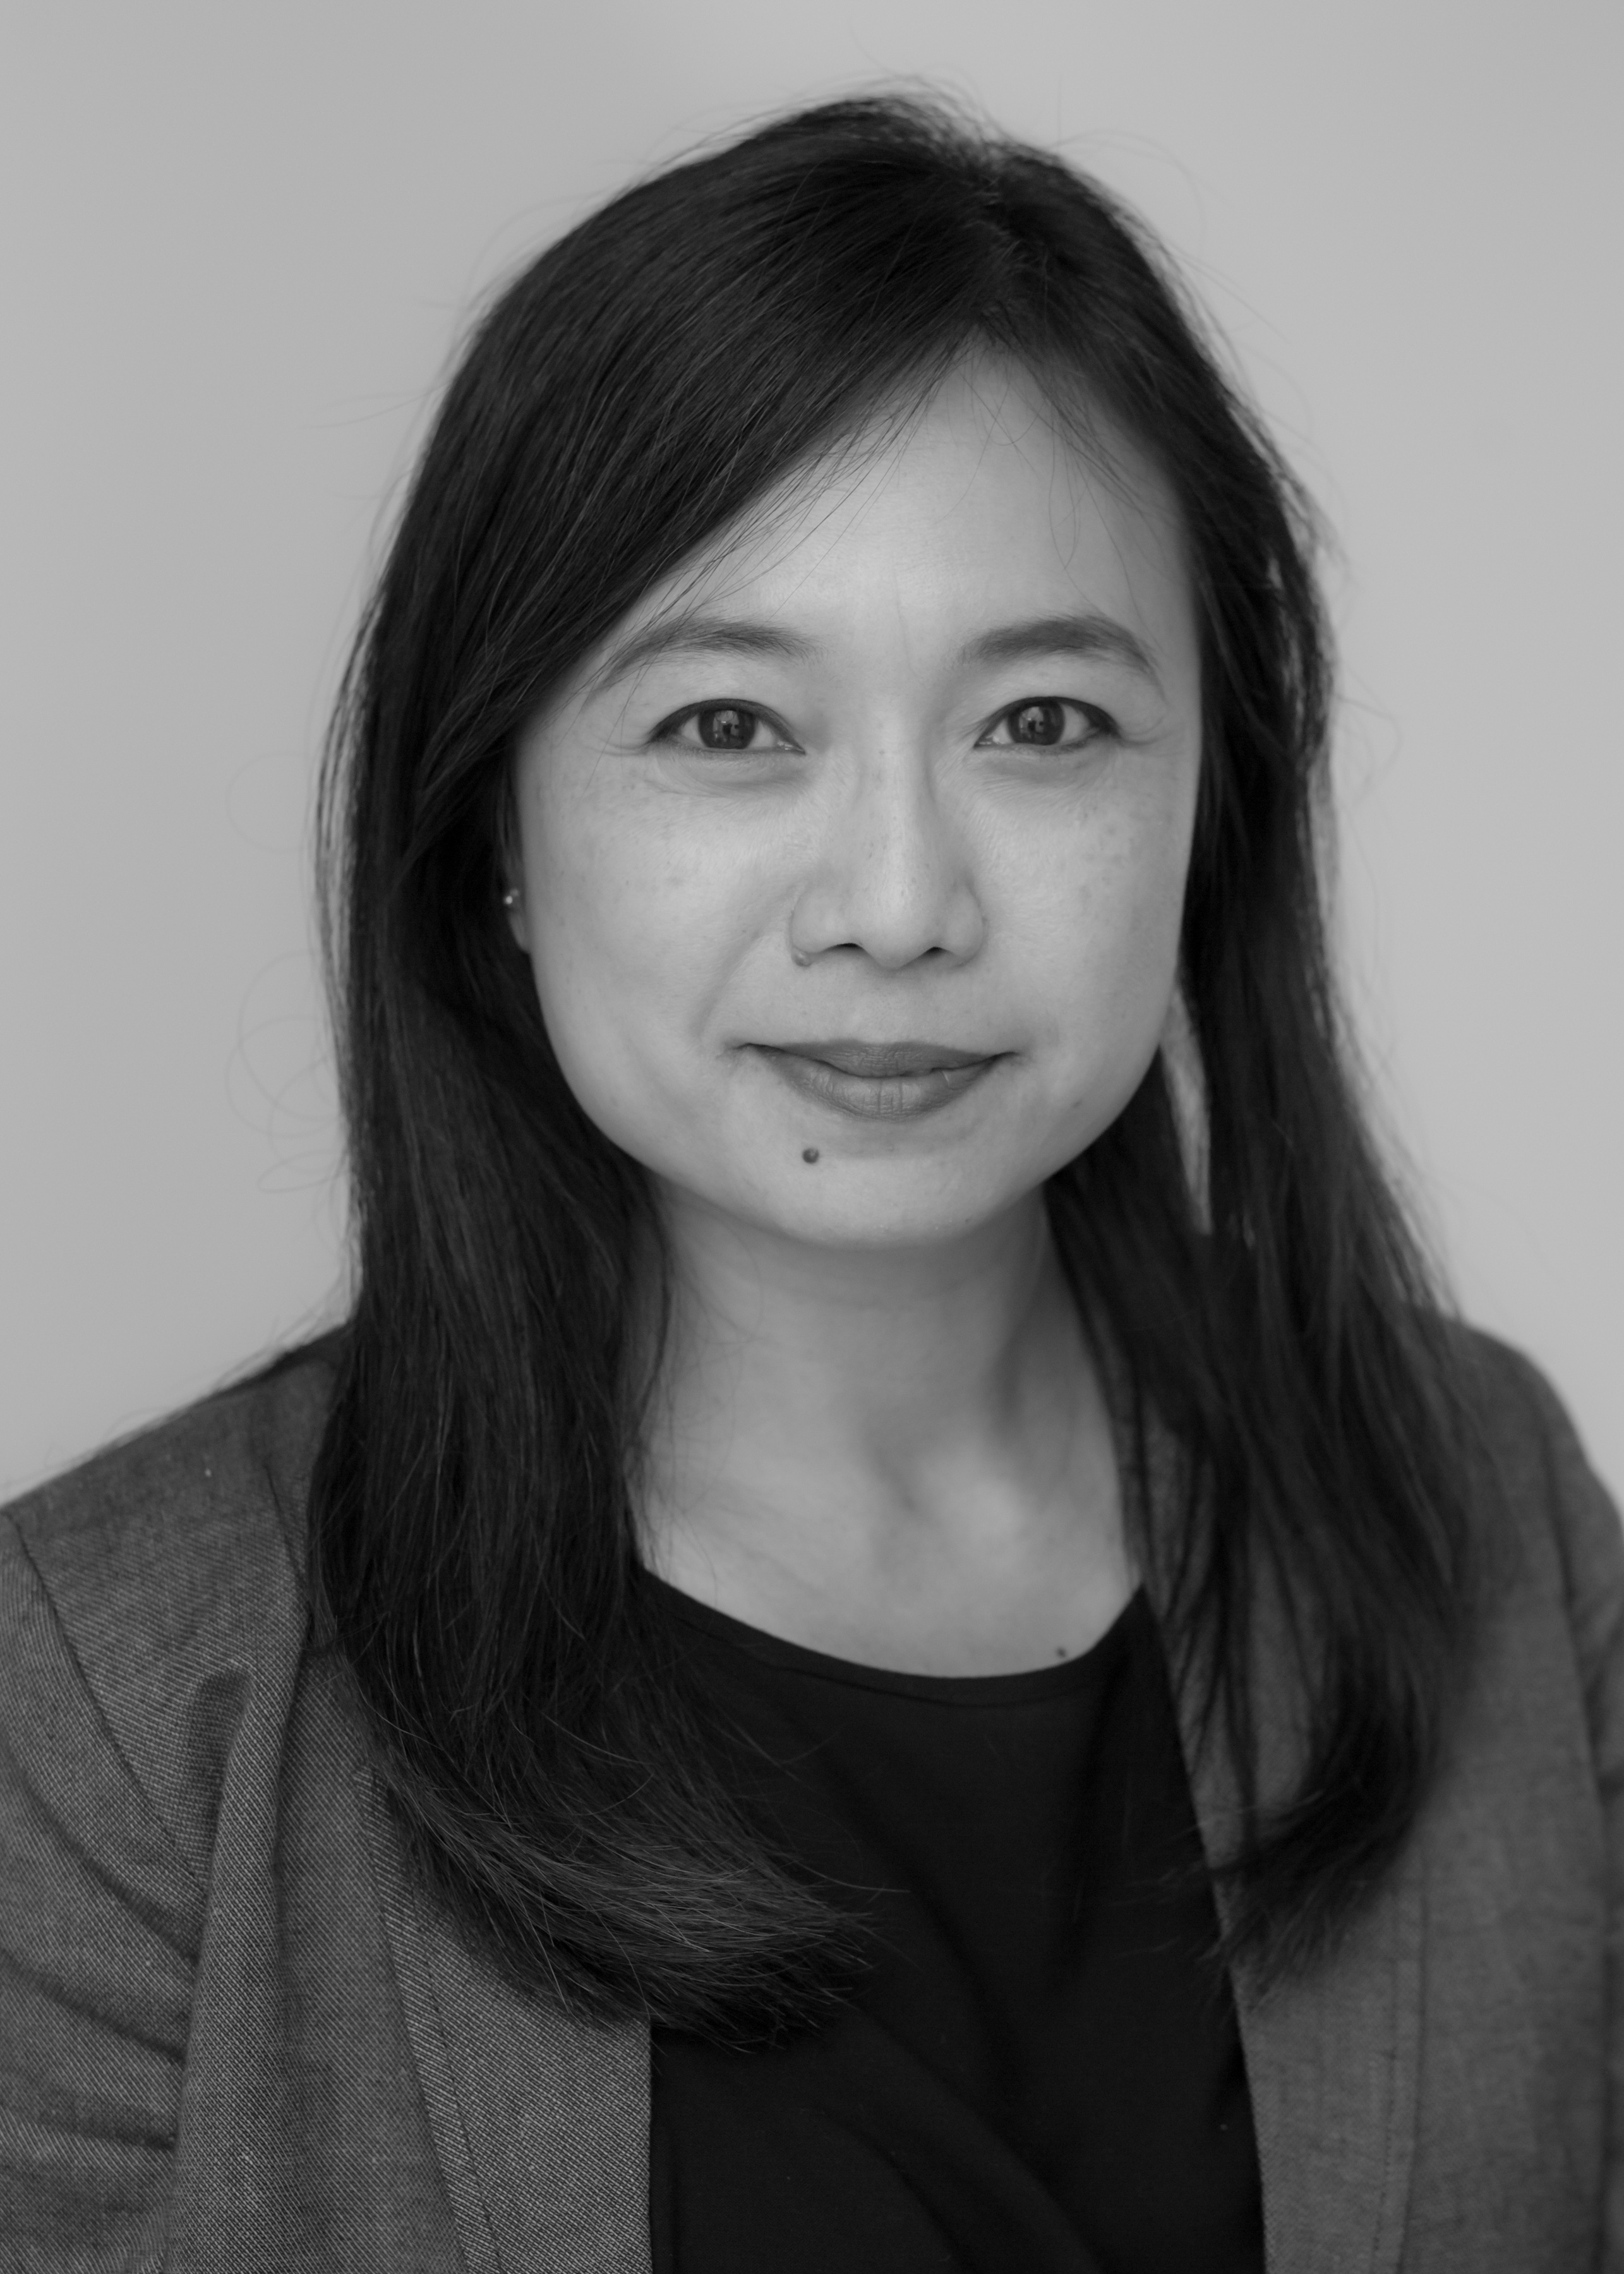 A black and white image of Claudia Mah, Investment Analyst at Ethical Investment Services.